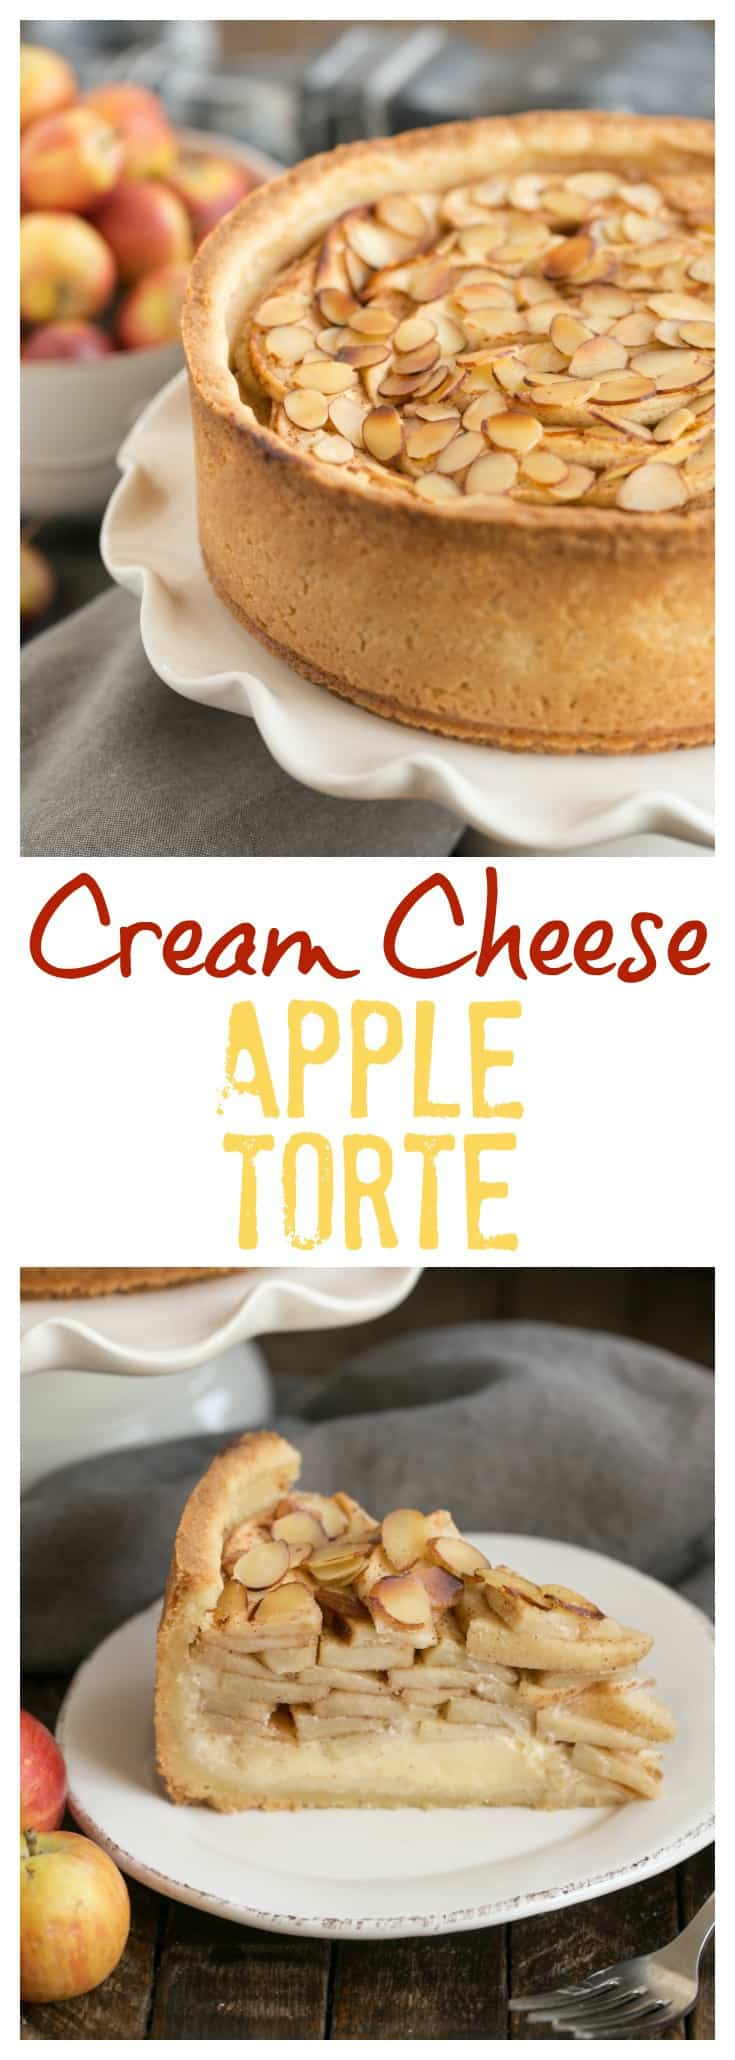 Cream Cheese Apple Torte - A buttery crust is topped with sweetened cream cheese, loads of cinnamon spiced apples, then sliced almonds #appledessert #tipsformakingappledesserts #bestpieapples #falldesserts #autumndessert #appletorte